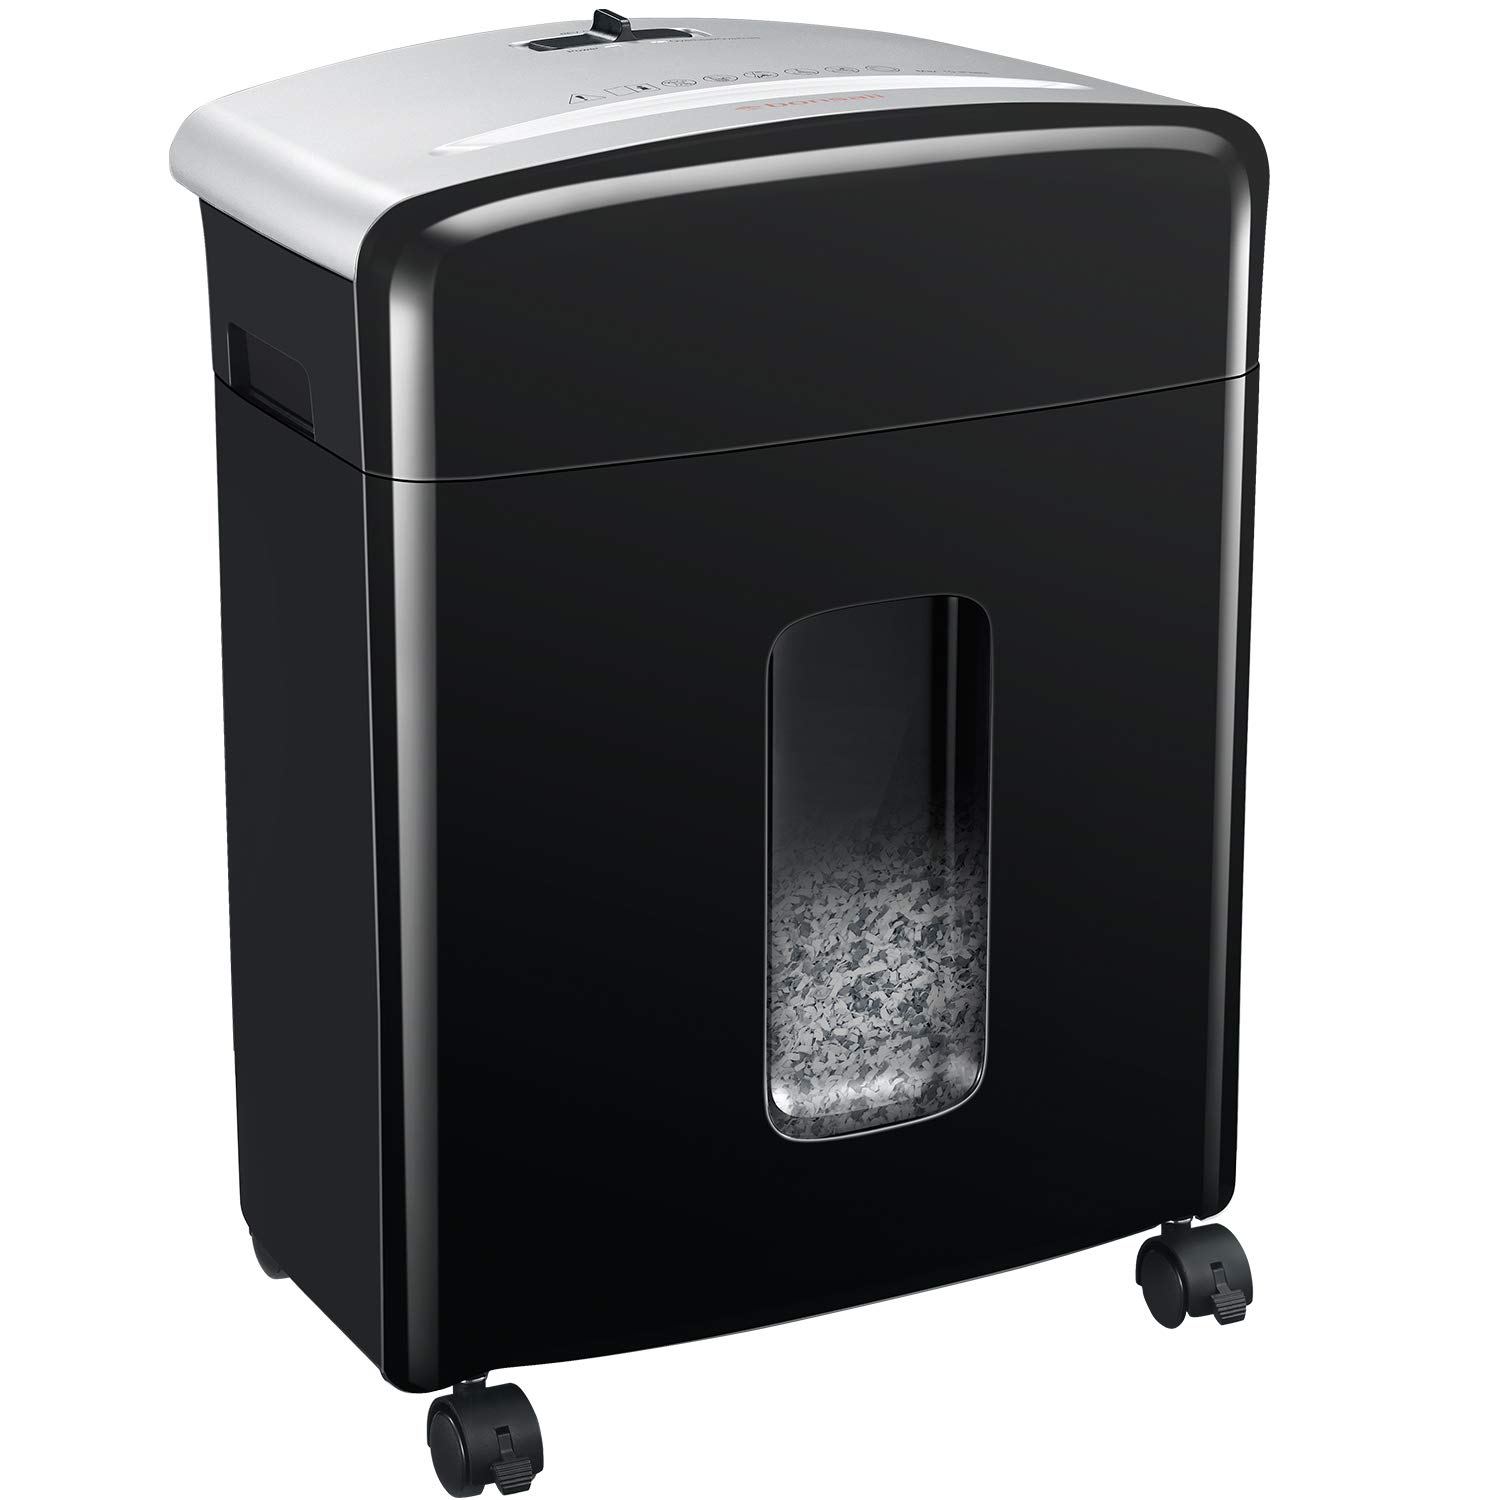 Bonsaii 10-Sheet High-Security Micro-Cut Paper Shredder, Credit Card/Staples/Clips Shredders for Office and Home Use, 3.5-Gallon Pullout Wastebasket with Large Transparent Window (C220-B) by bonsaii